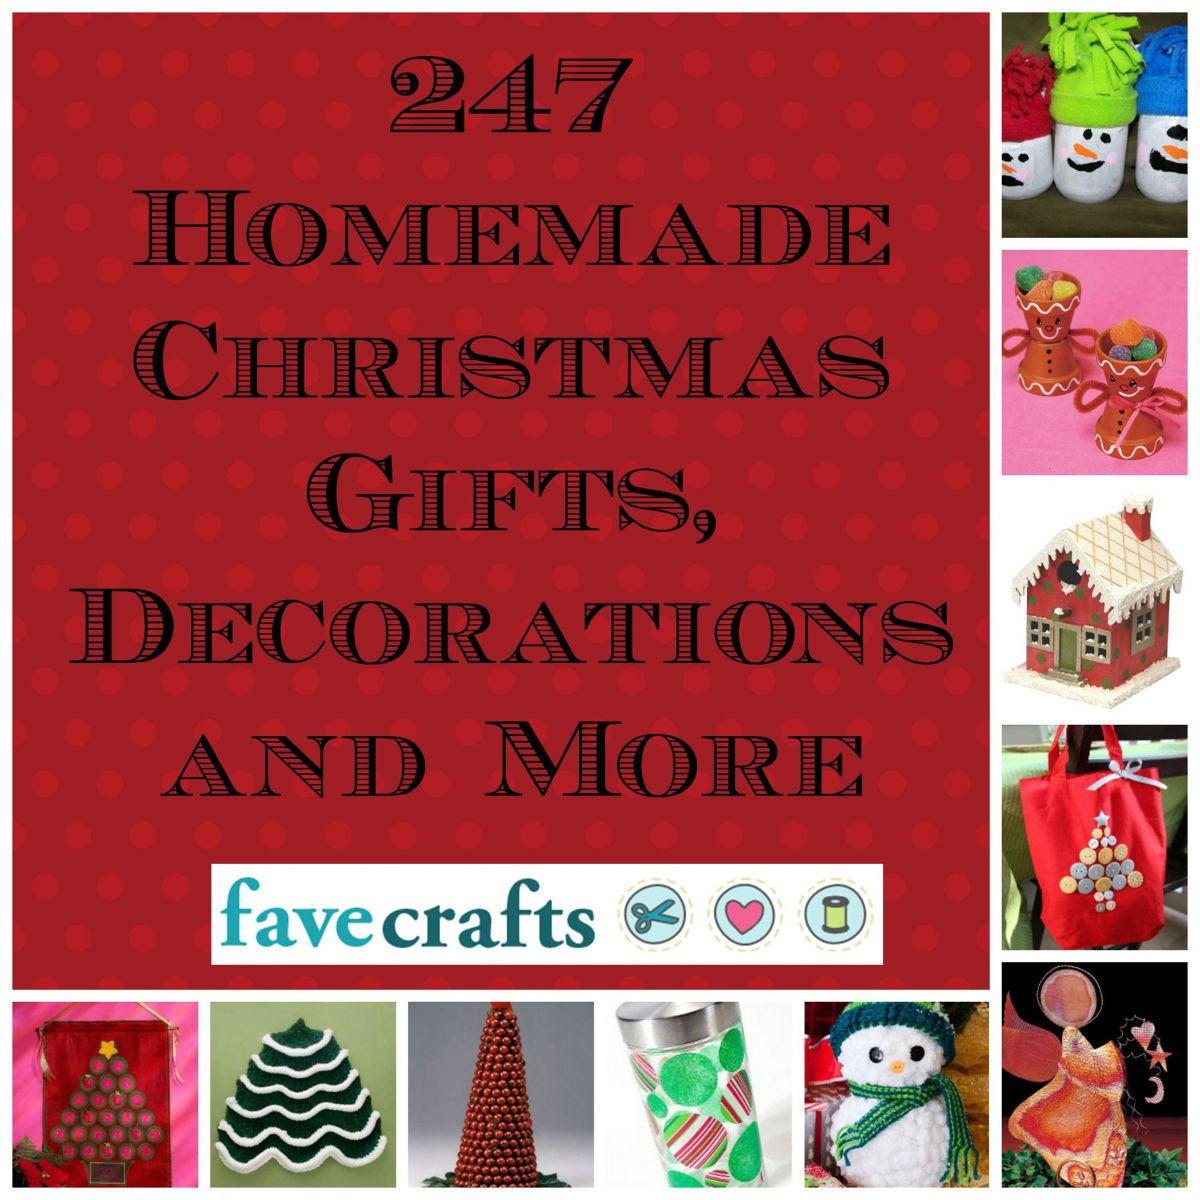 247 Homemade Christmas Gifts, Decorations, and More